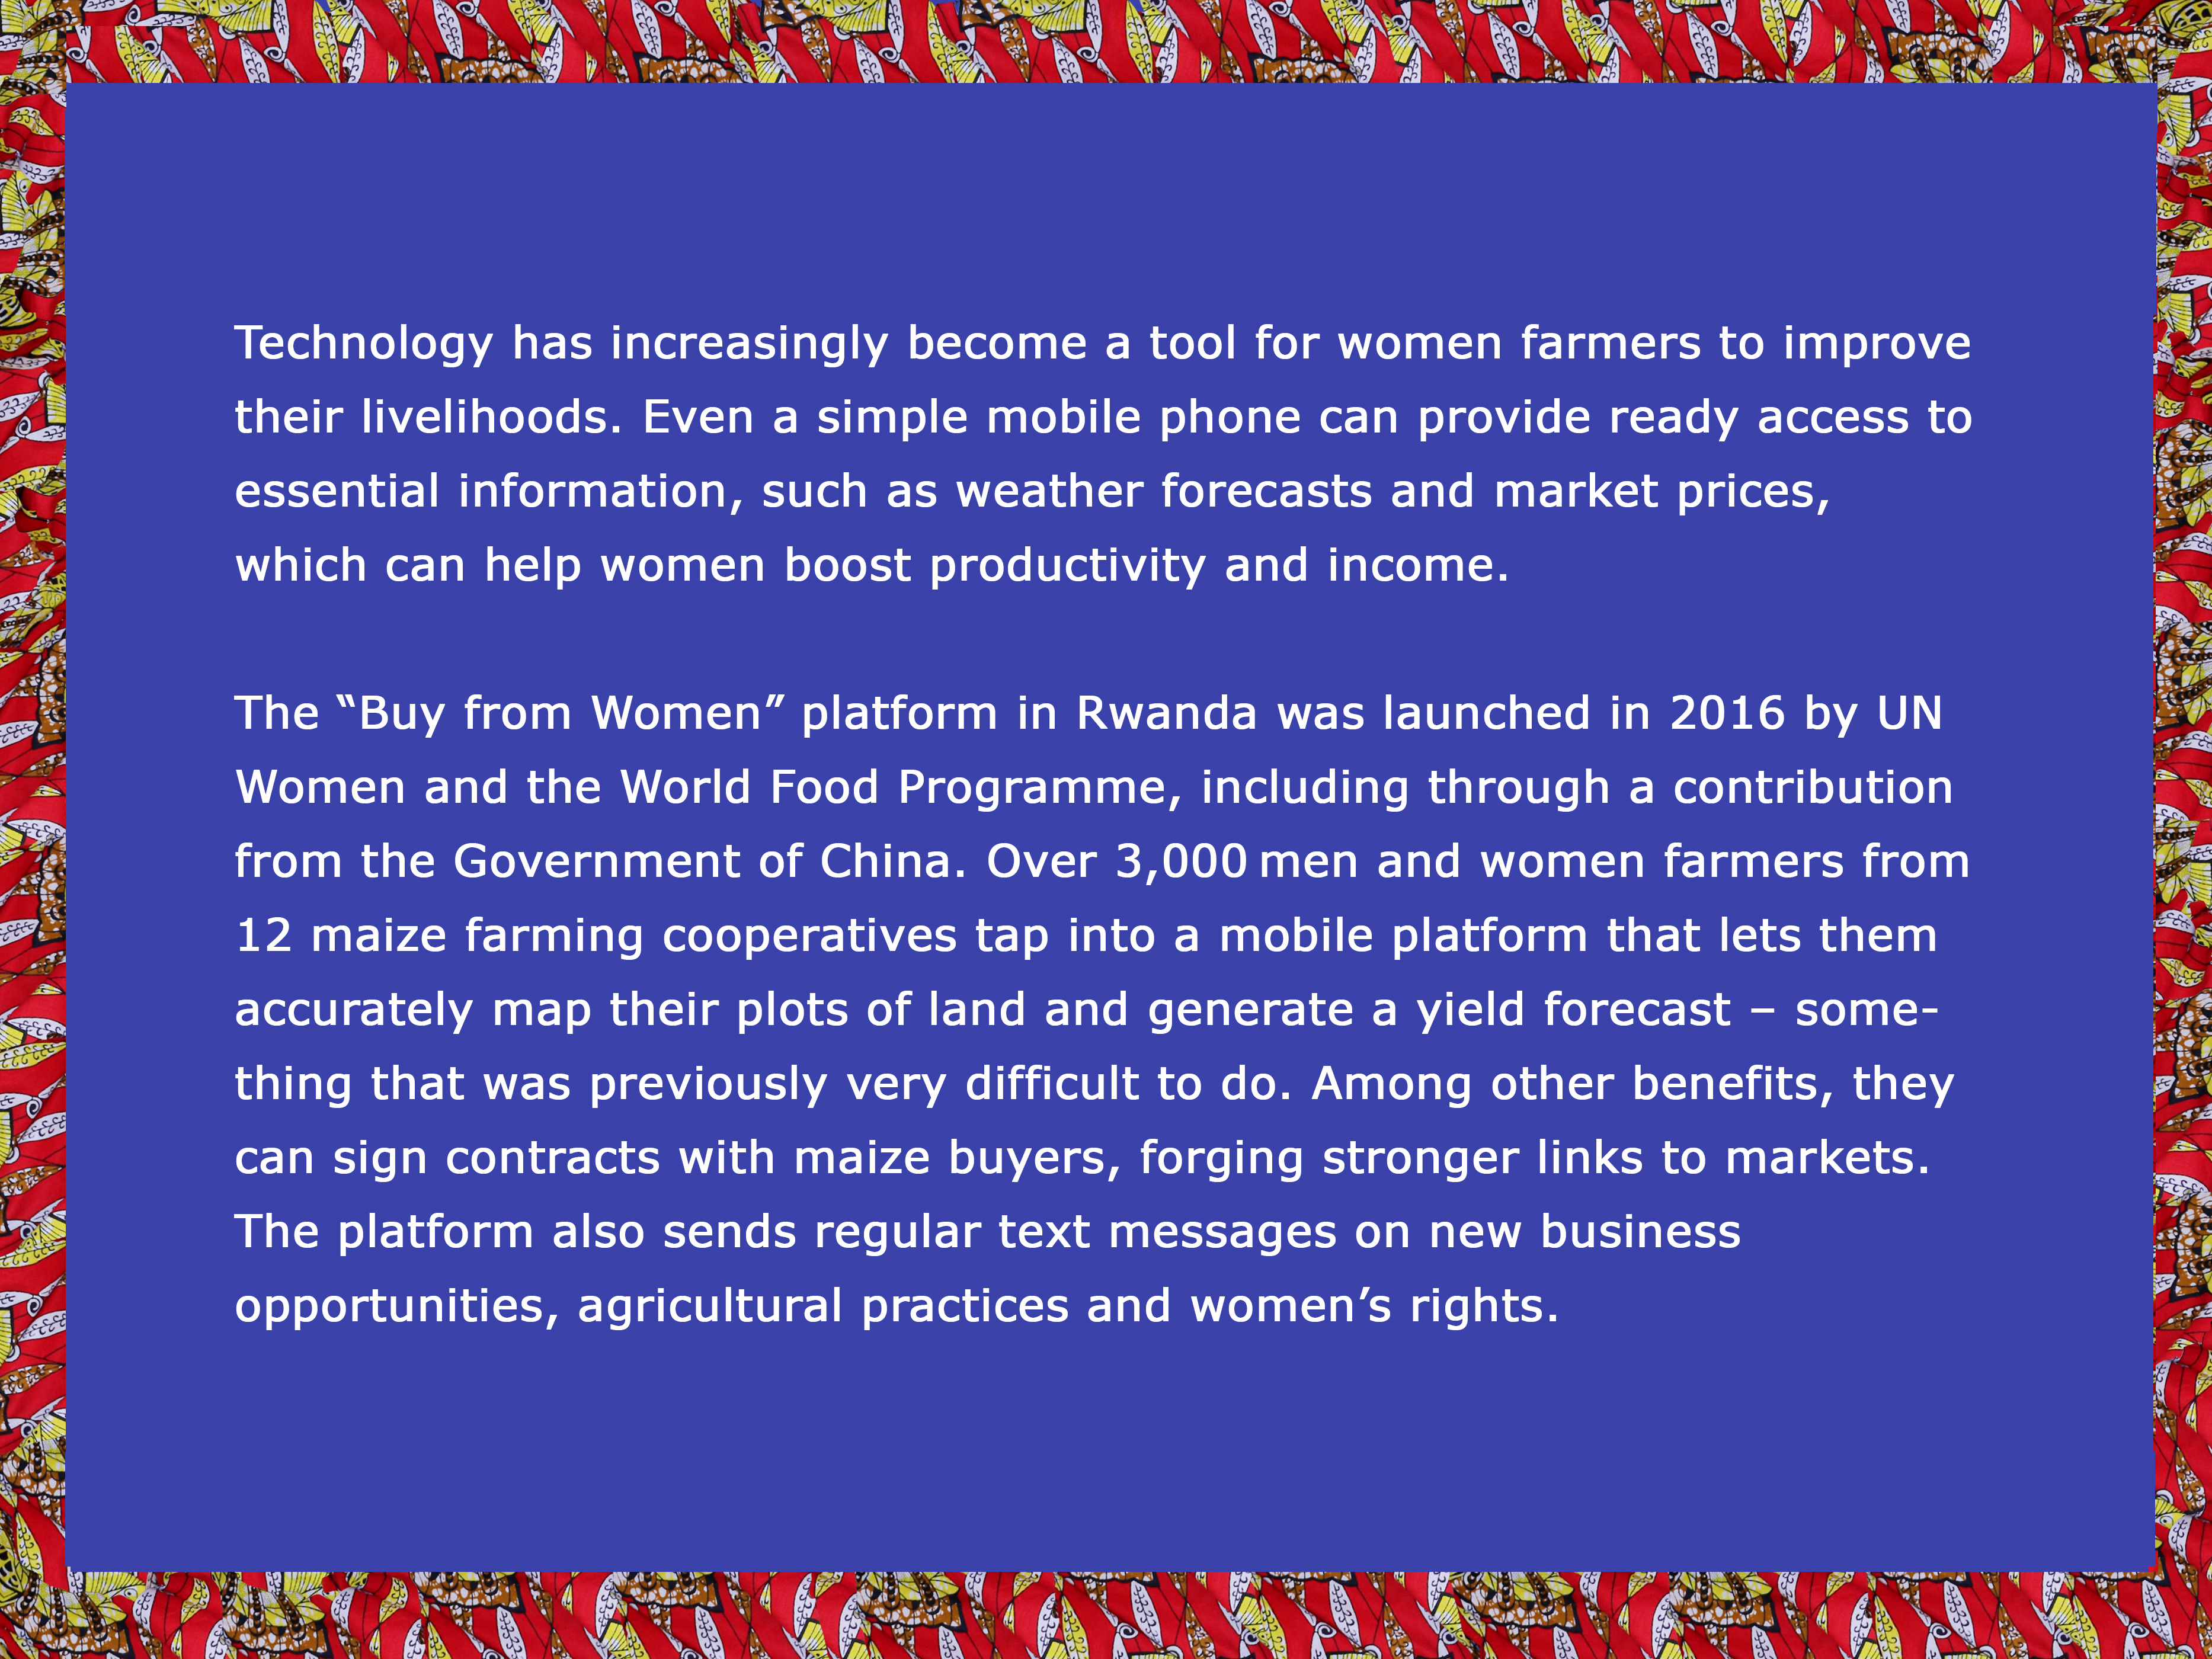 Technology has increasingly become a tool for women farmers to improve their livelihoods.